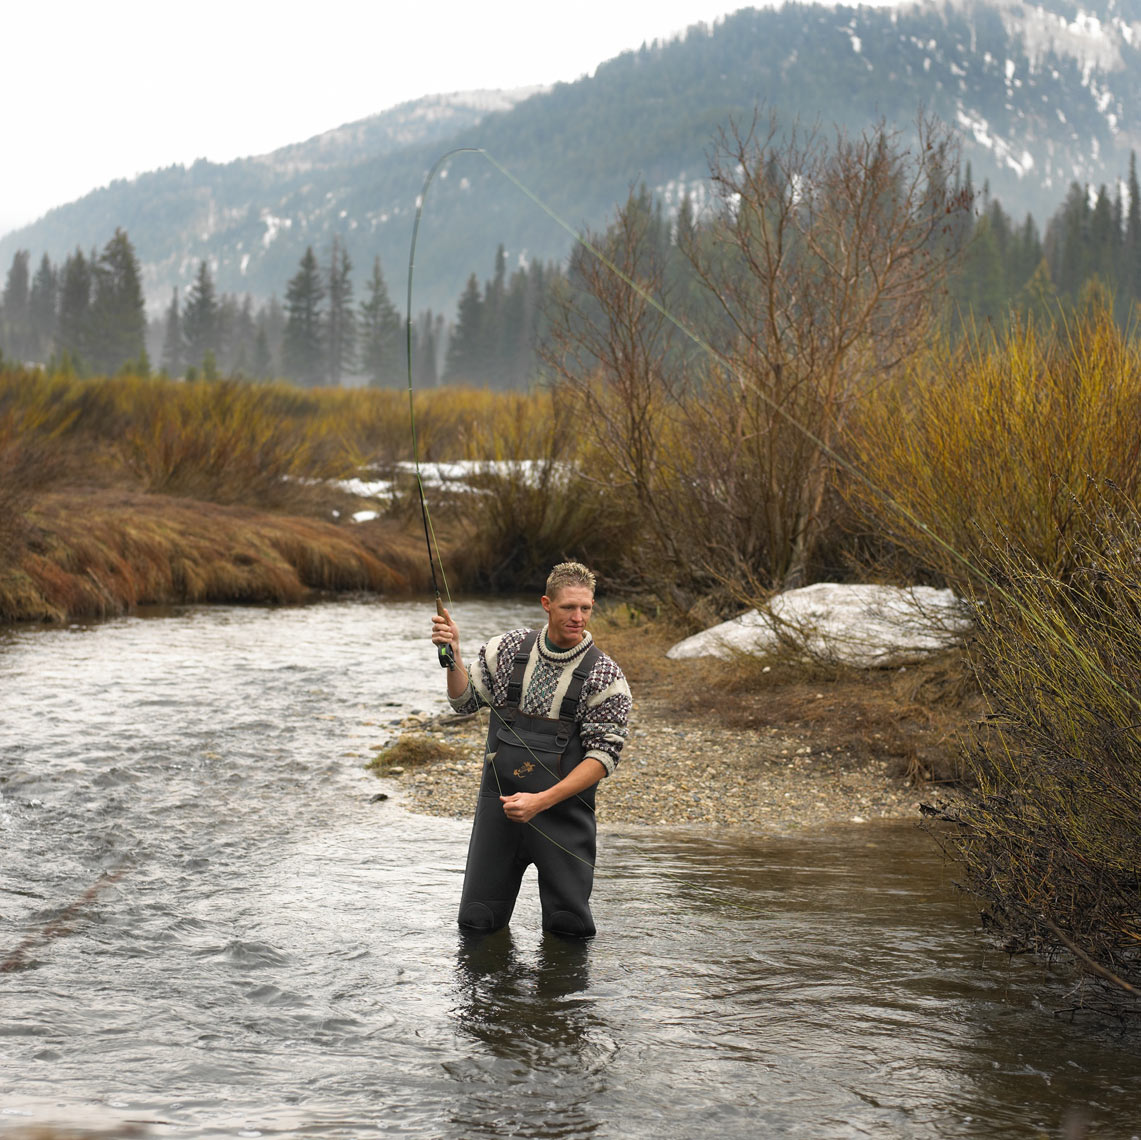 Man fly fishing/stream/Utah/mountains/lifestyle photography